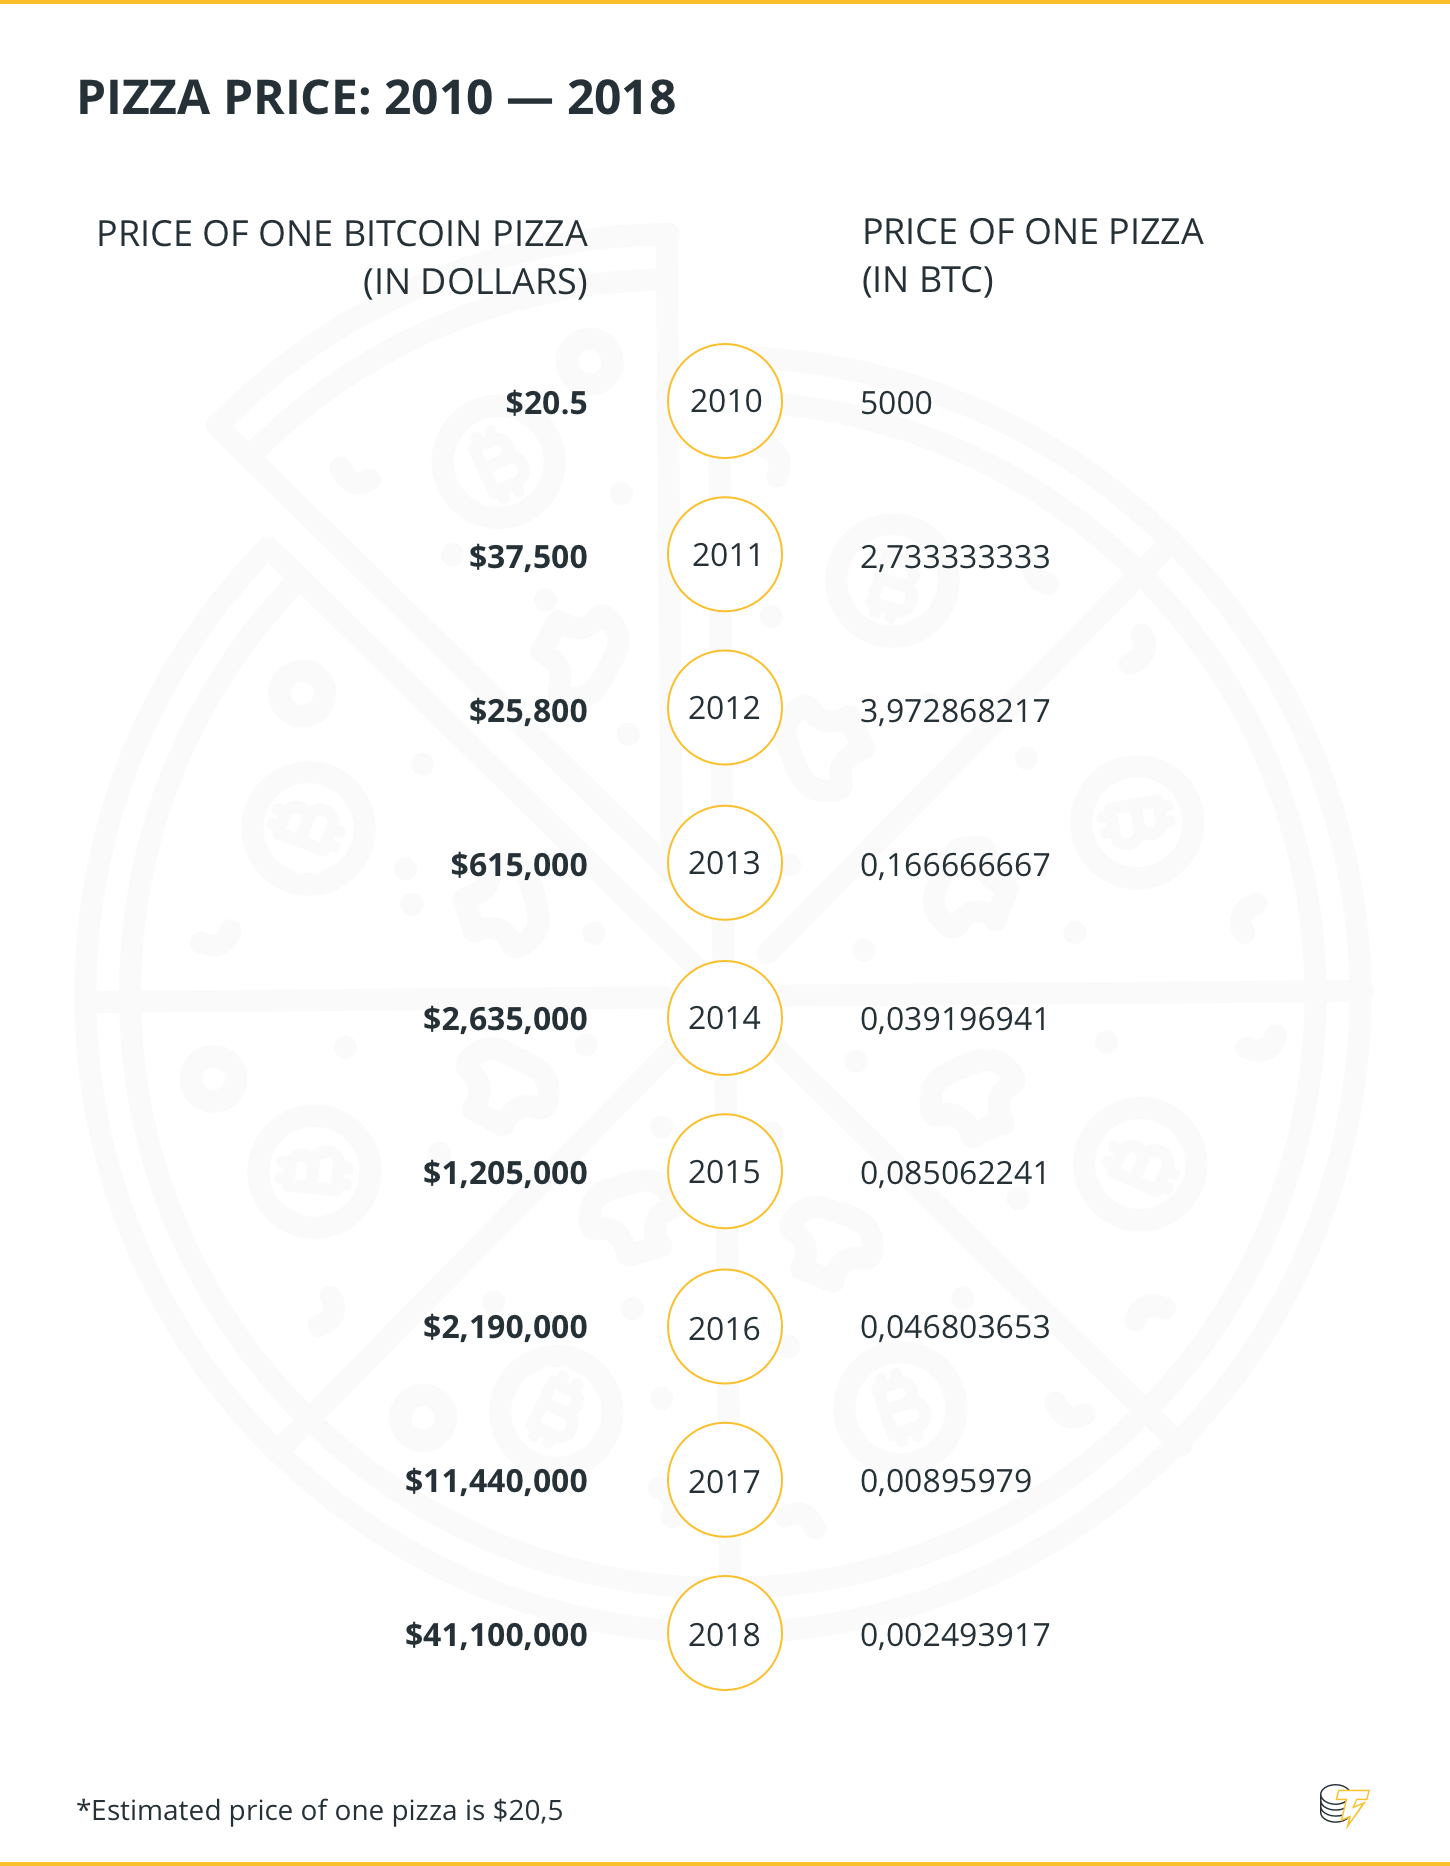 Pizza Price: 2010 - 2018